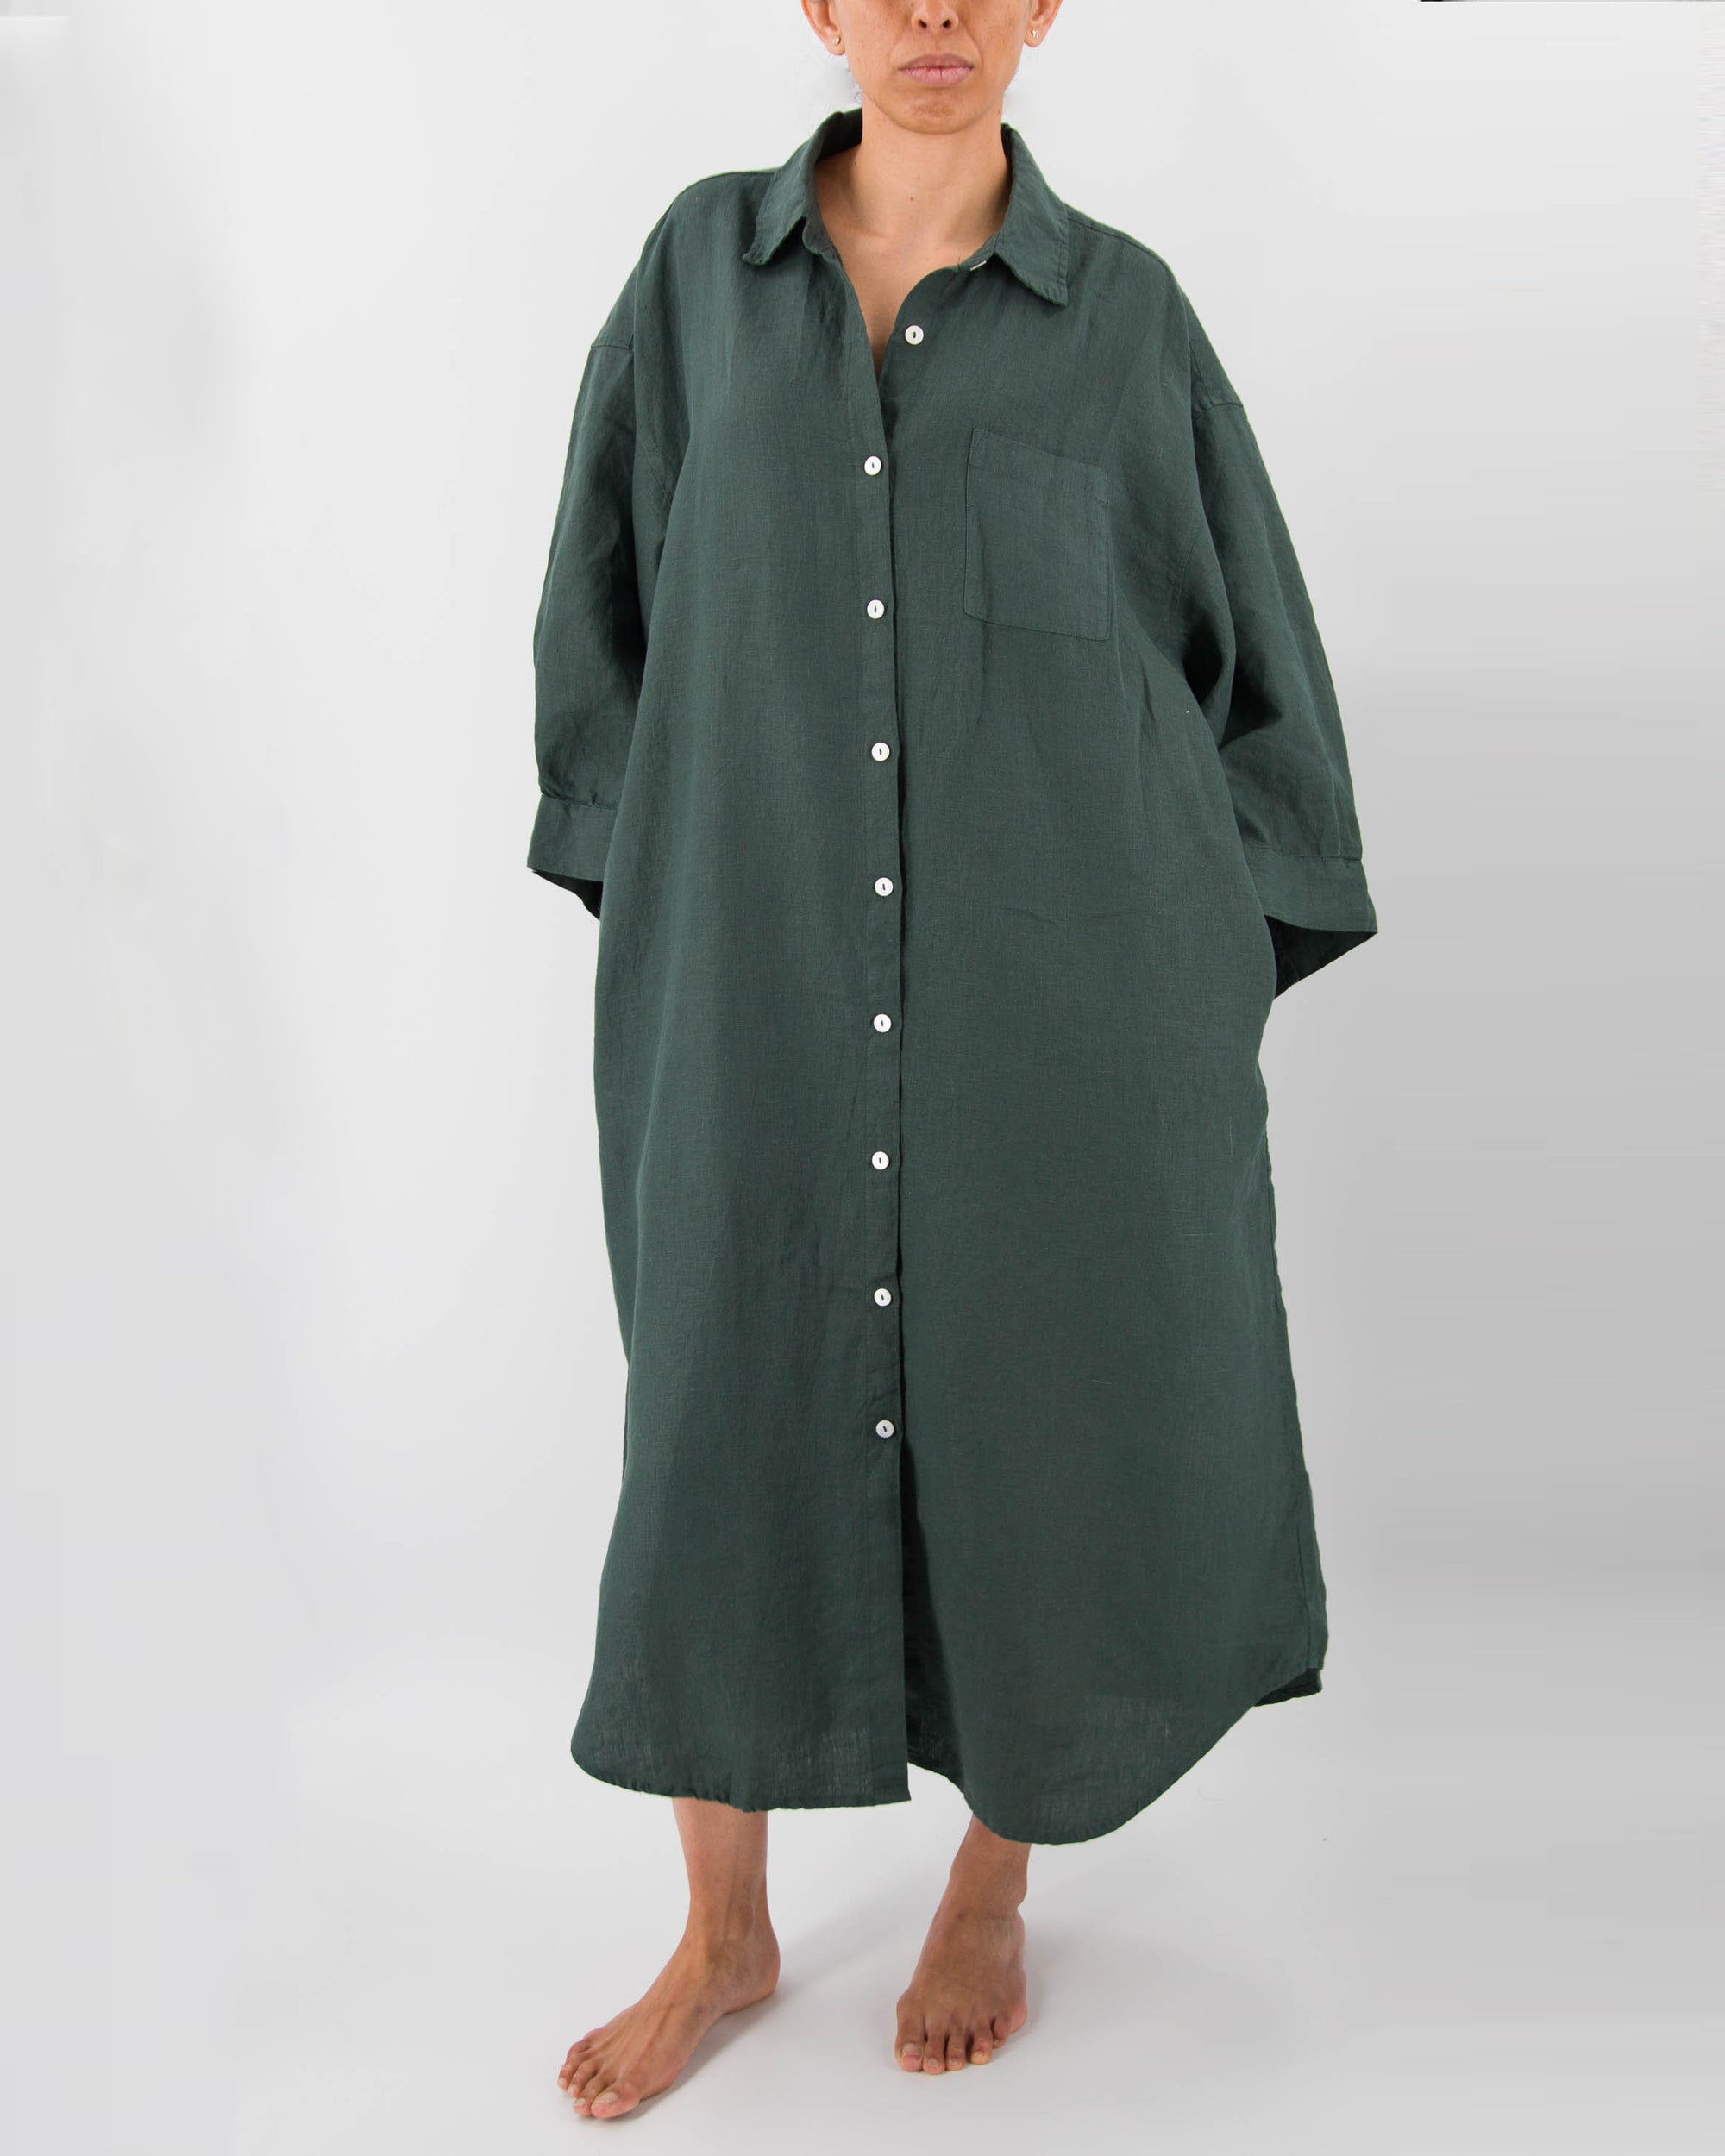 Side profile of model with full-length linen dress with buttons and front pocket in pine green